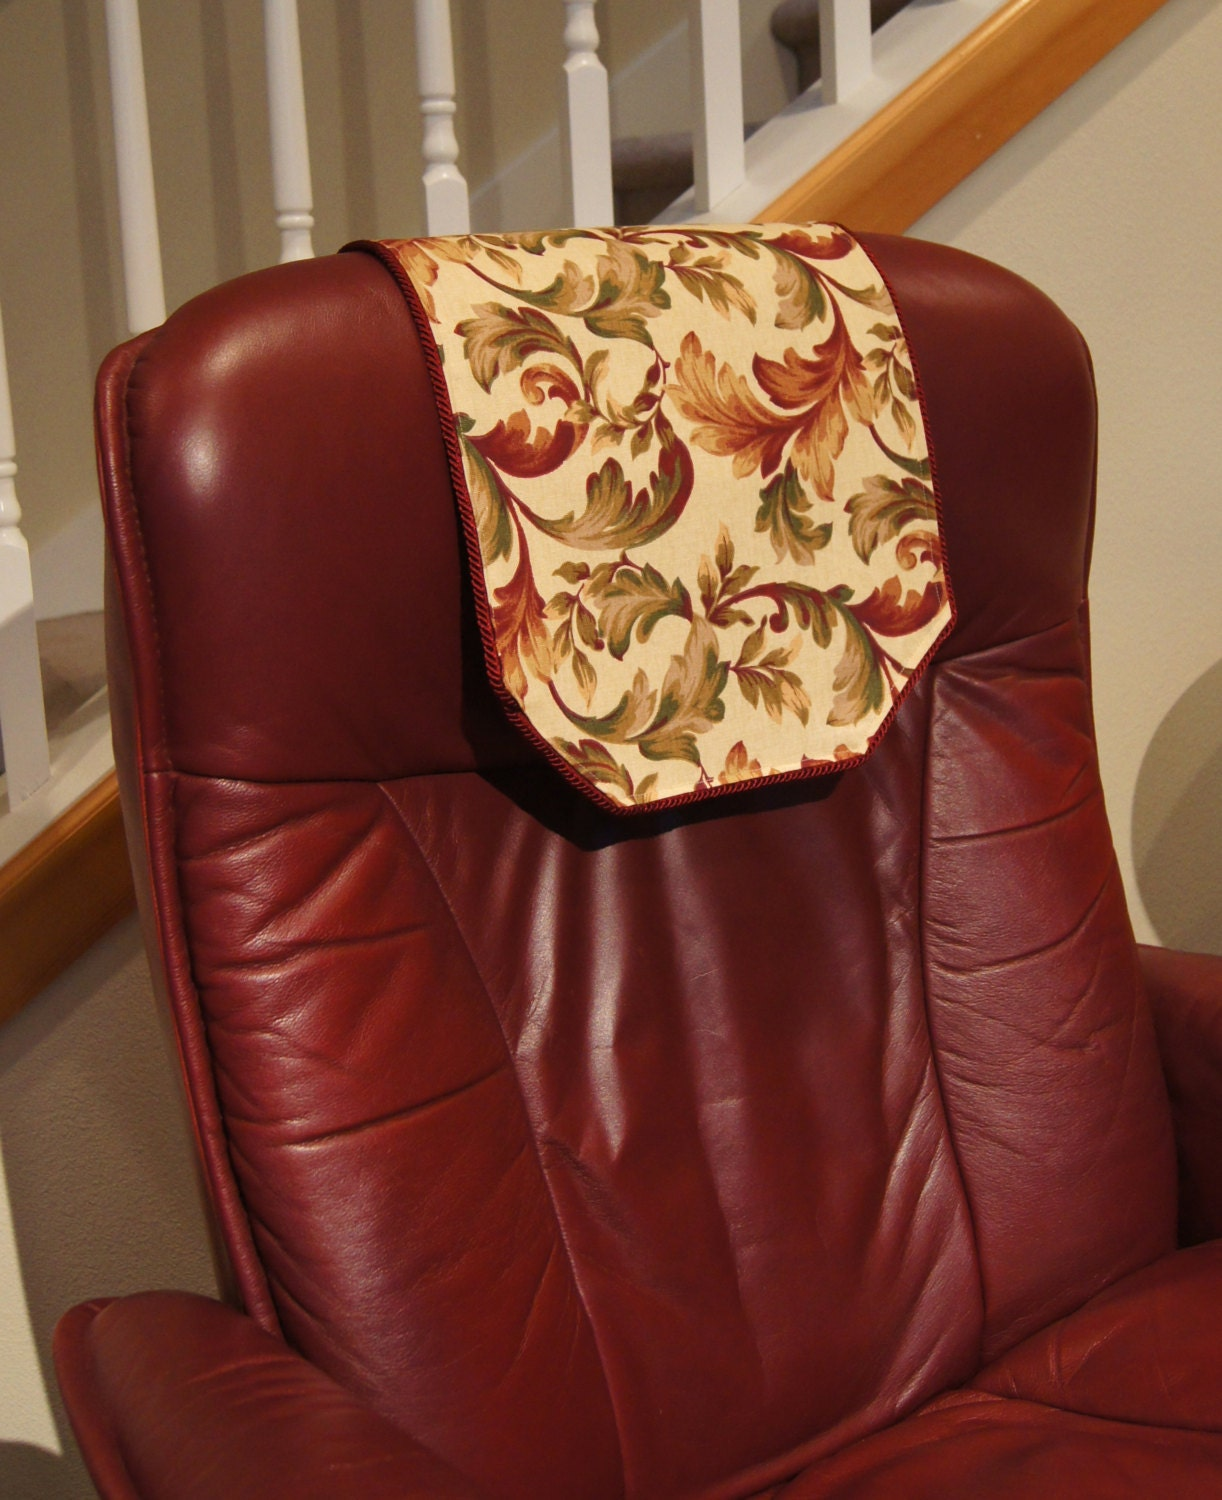 Recliner Chair Headrest Cover Burgundy Floral Chair By